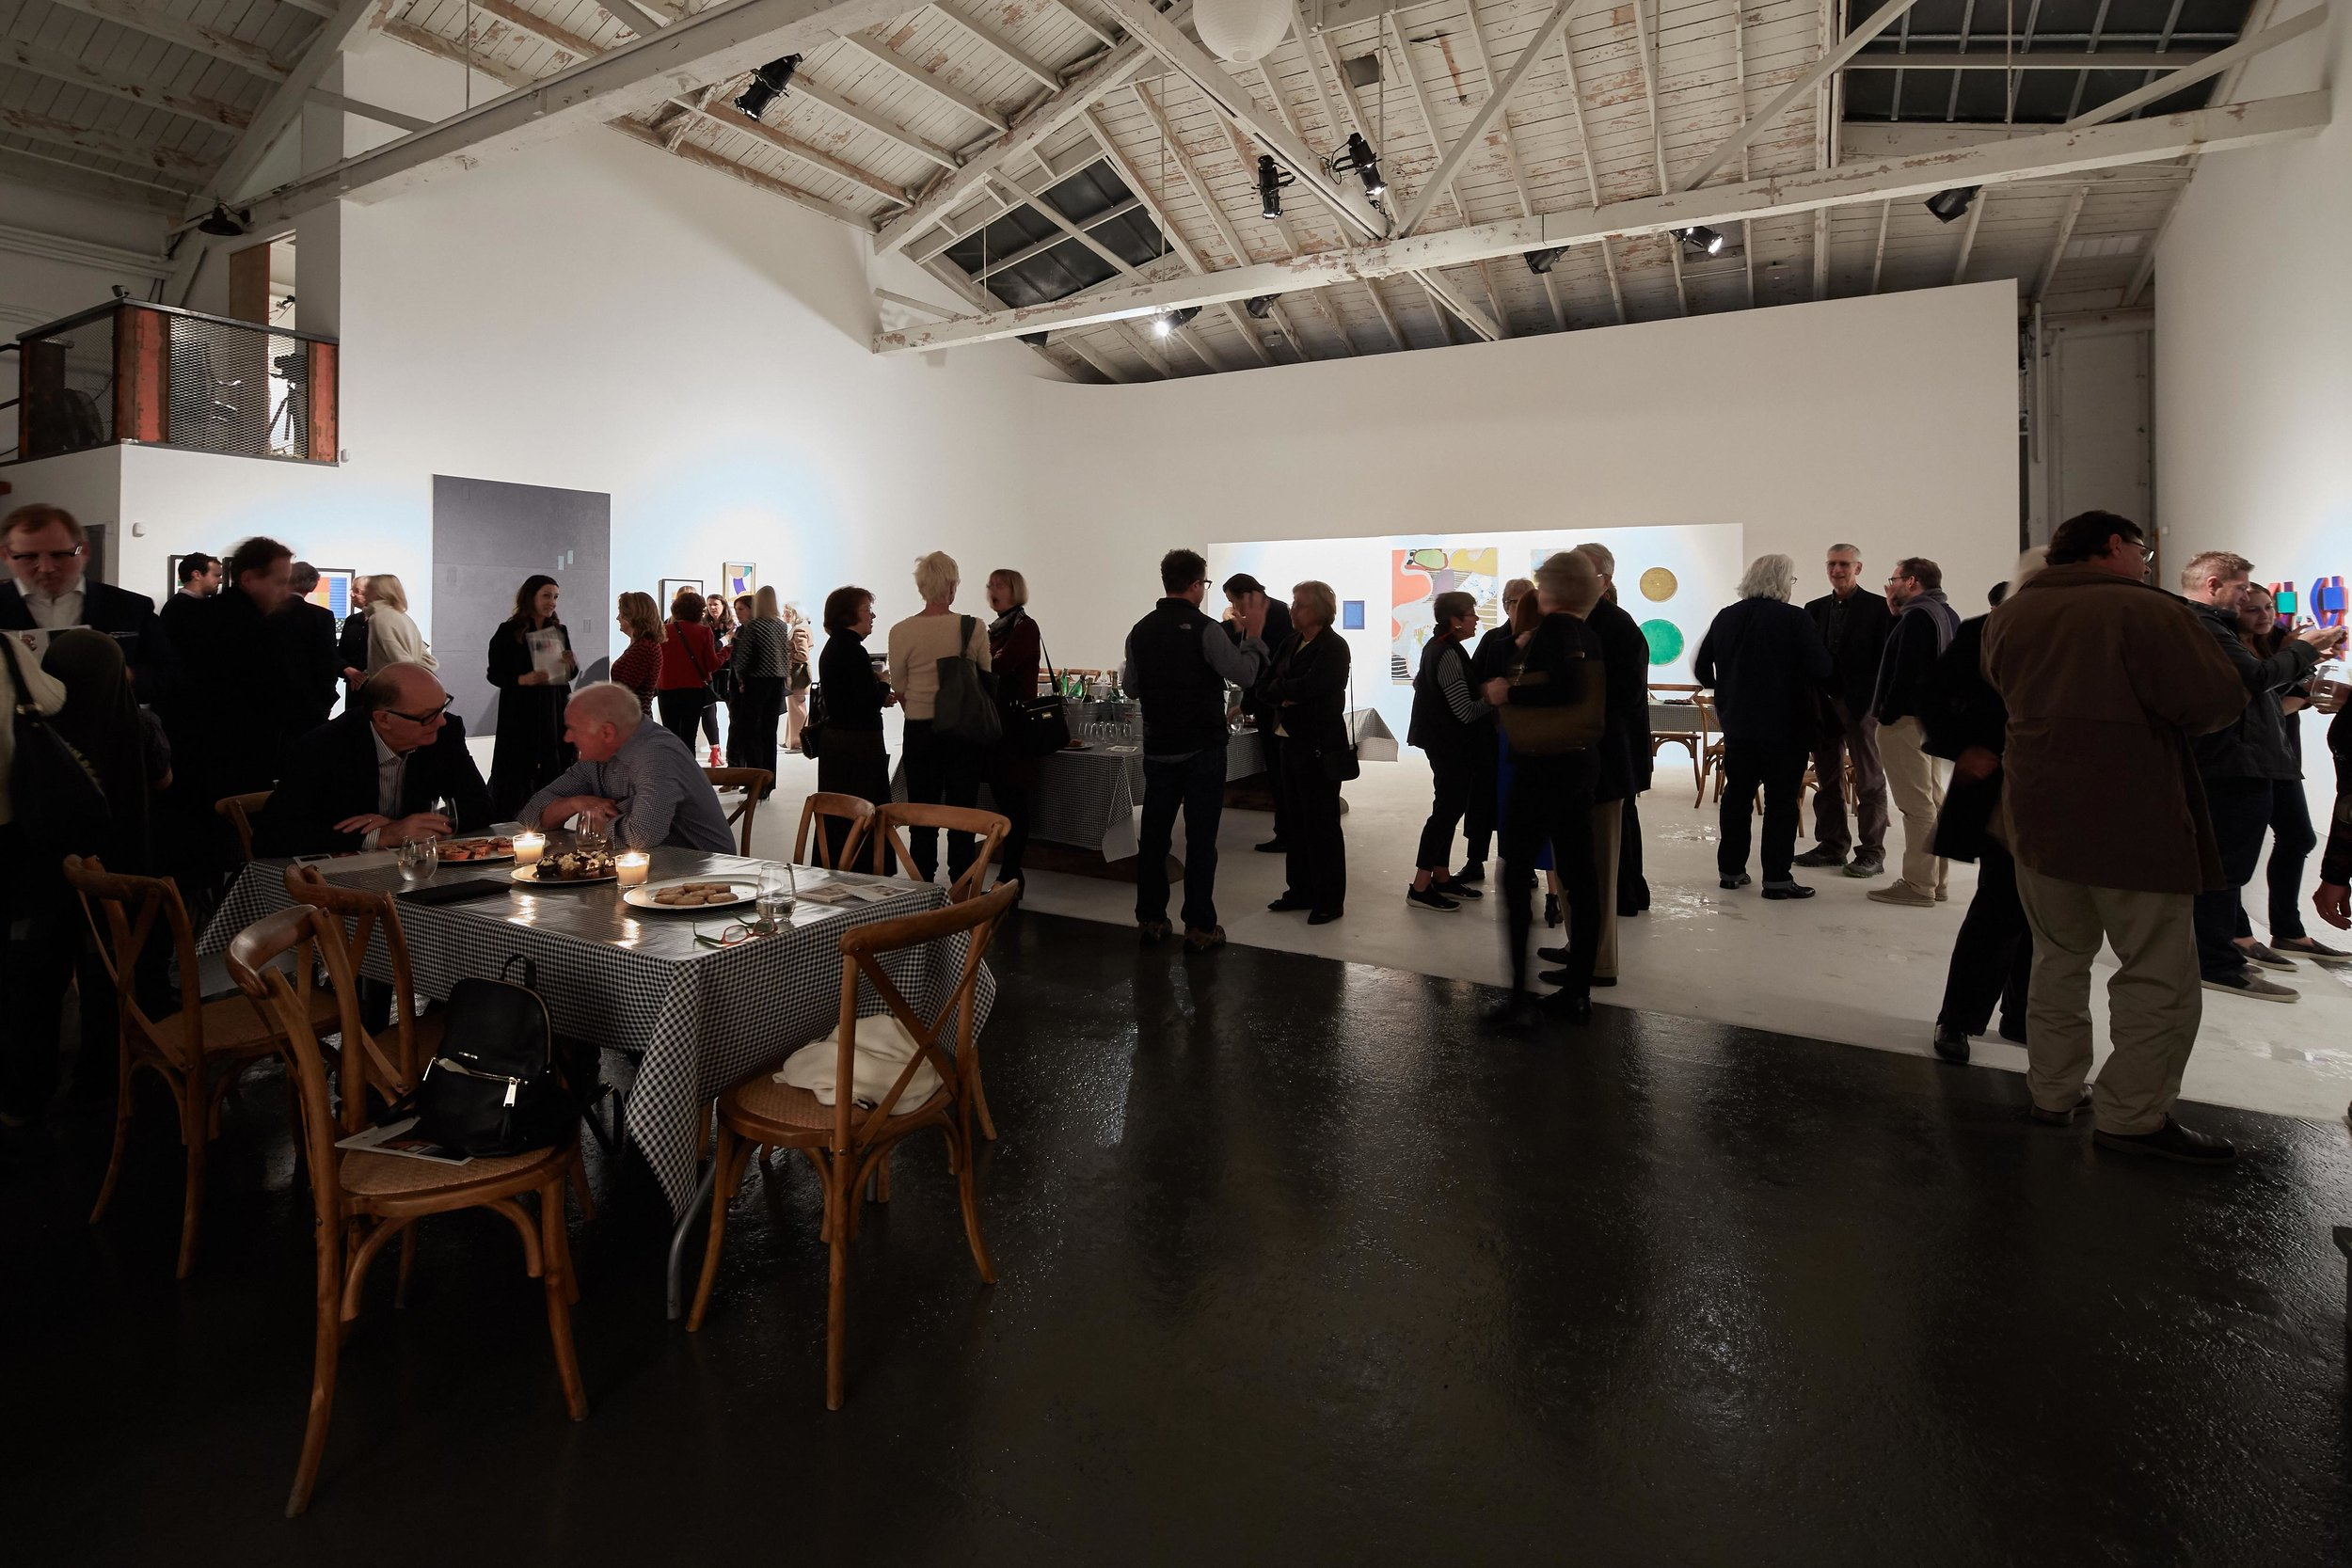 PriorEvents_ART-SHOW-BTS-0139_0062w.jpg